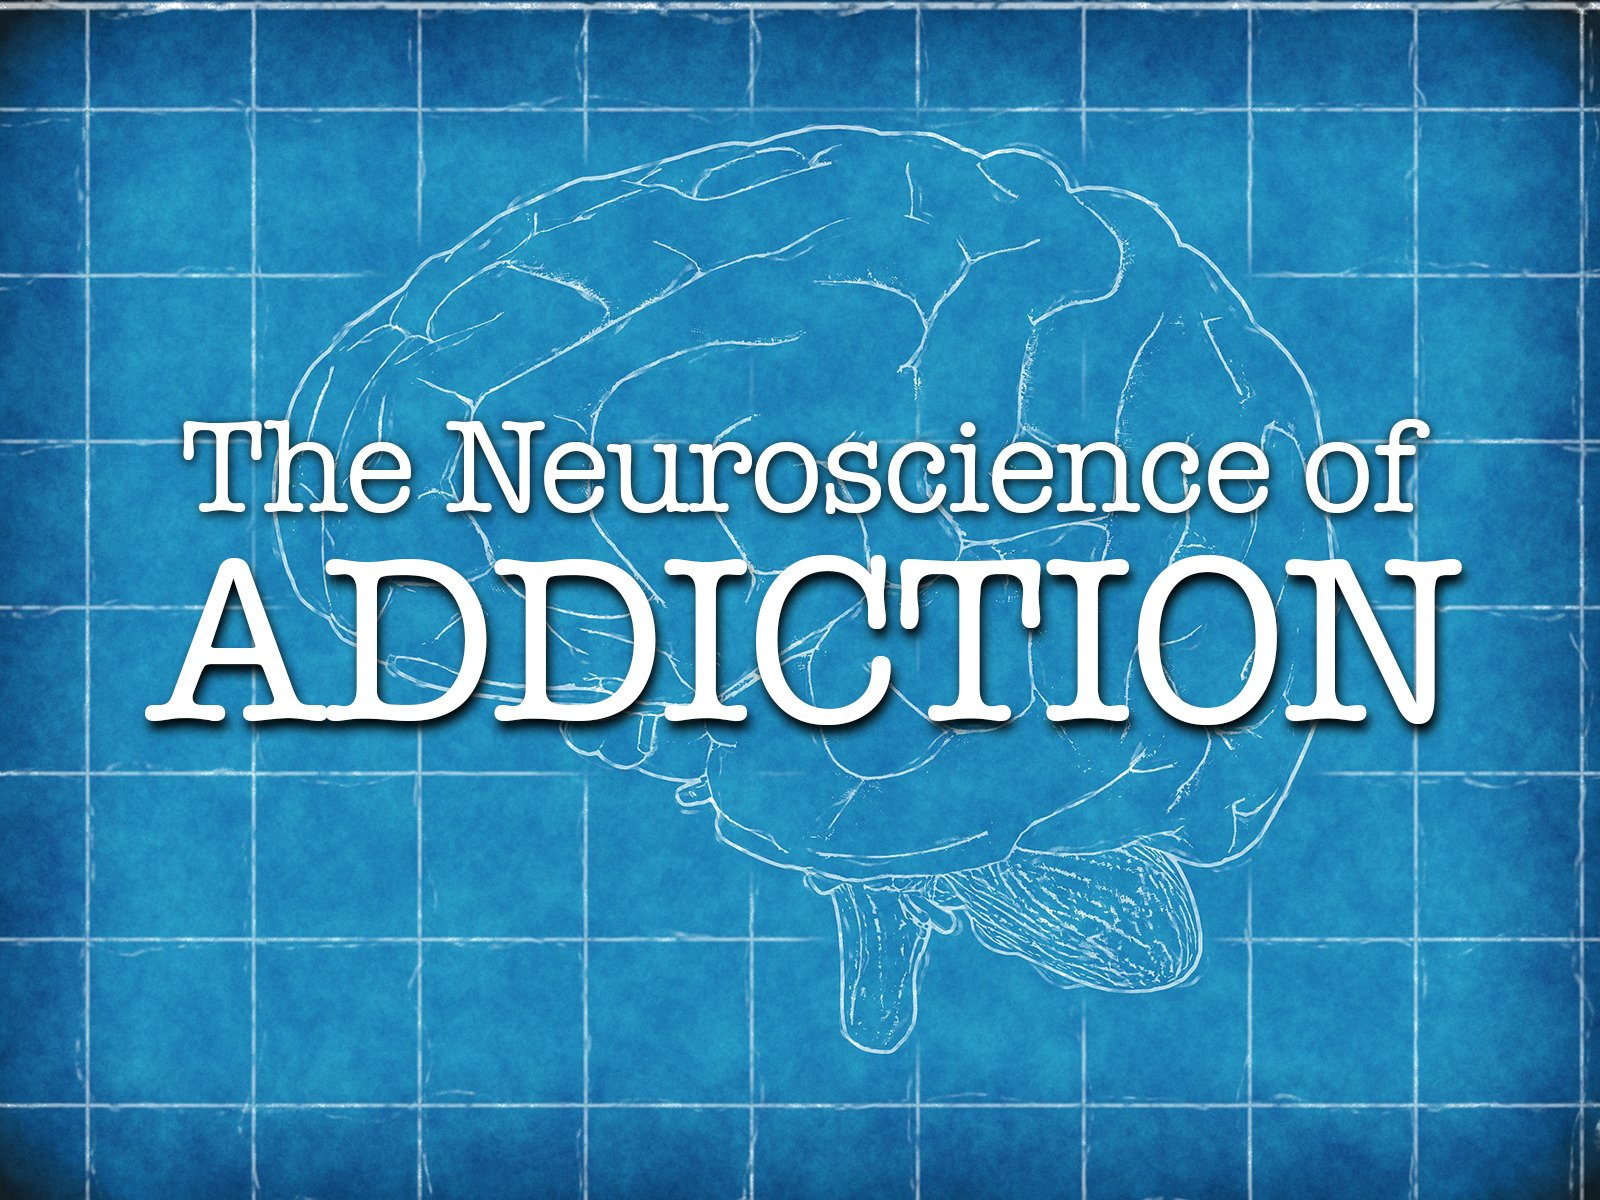 The Neuroscience of Addiction - Season 1